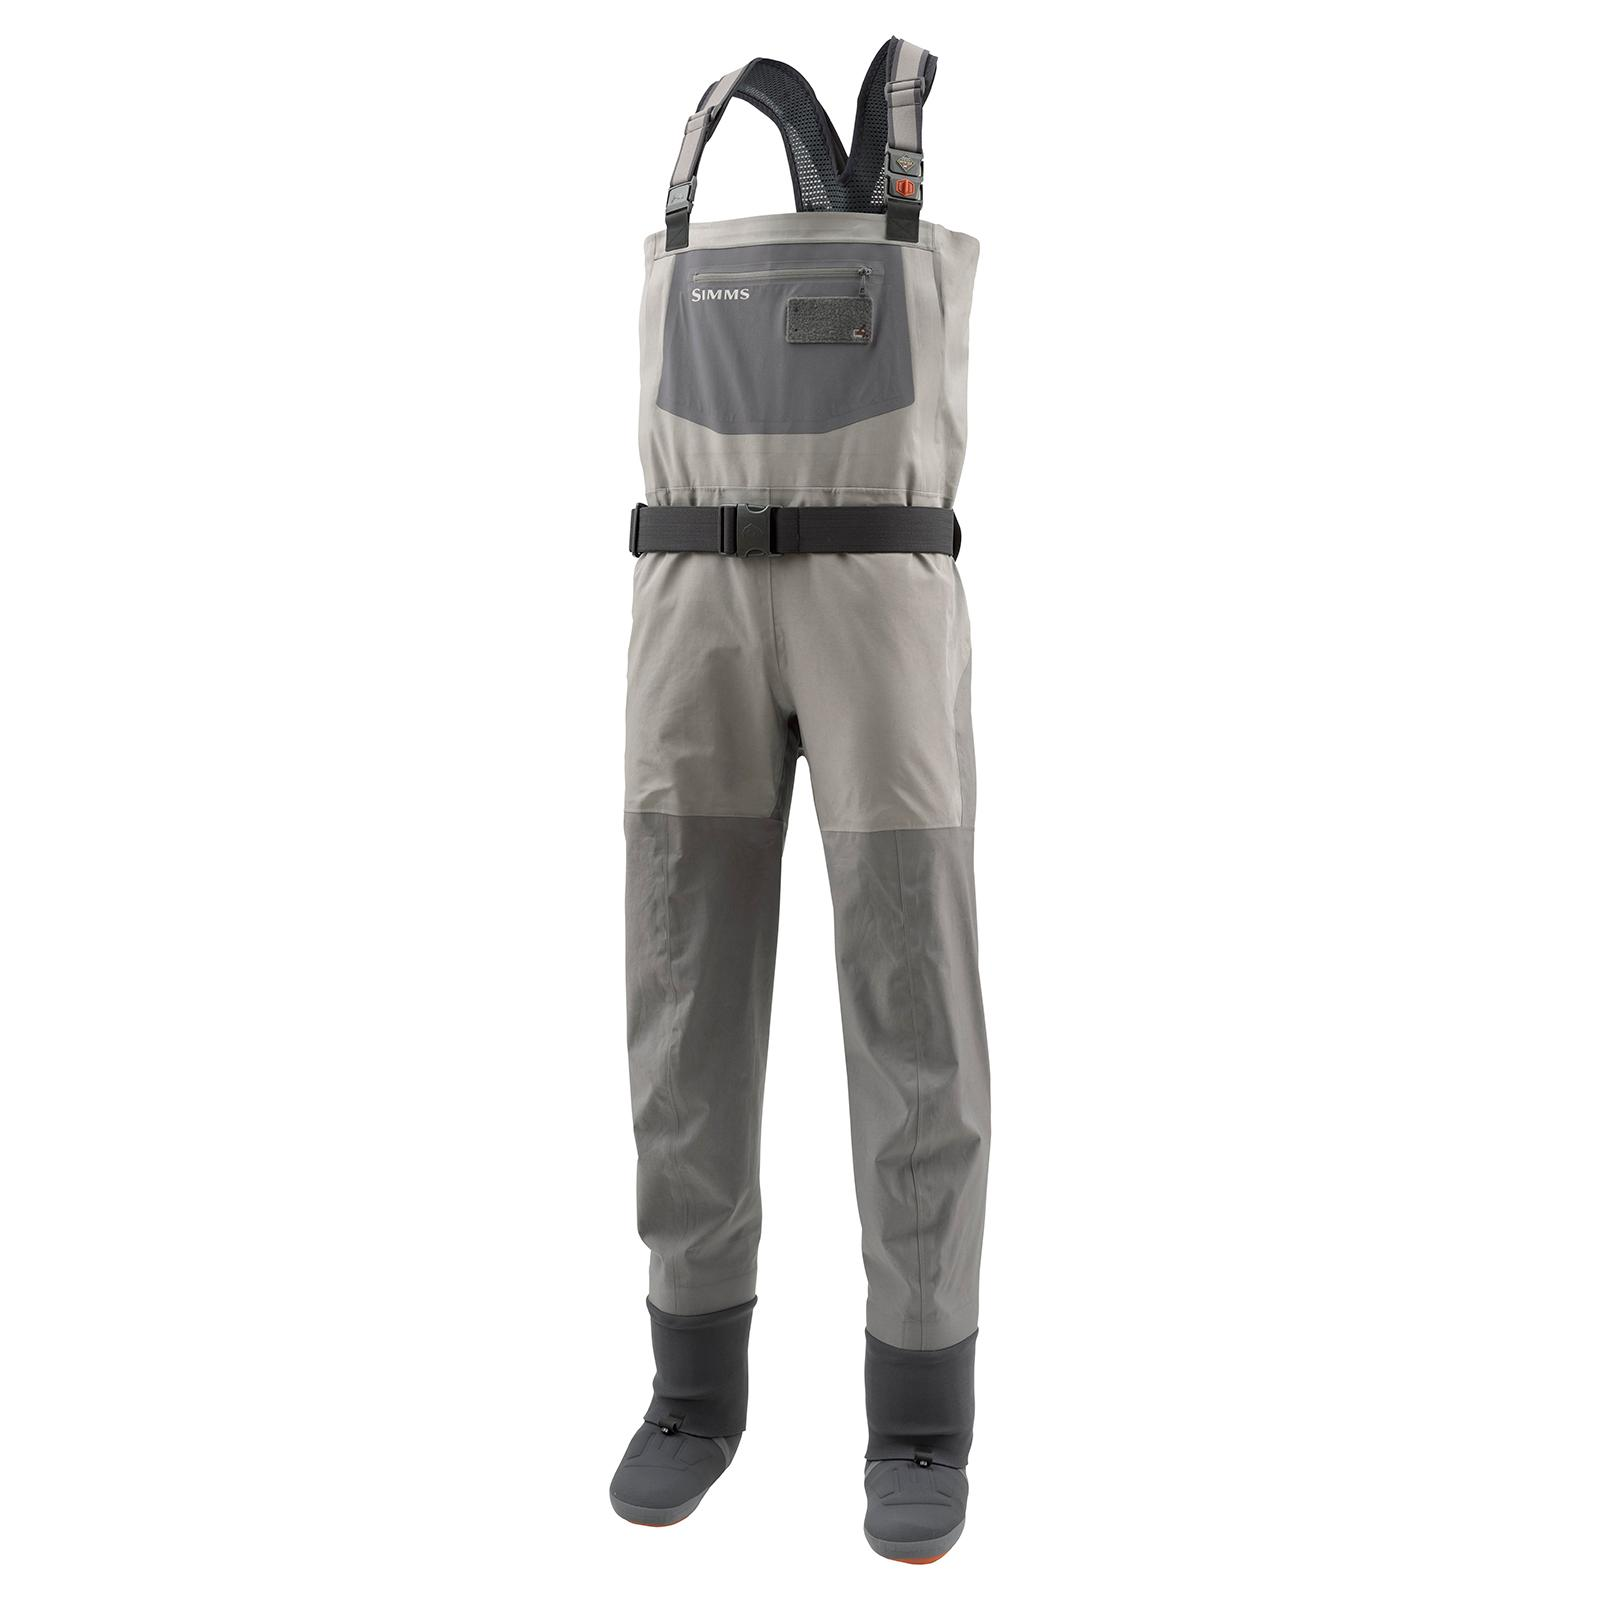 G4 Pro Stockingfoot Chest Waders